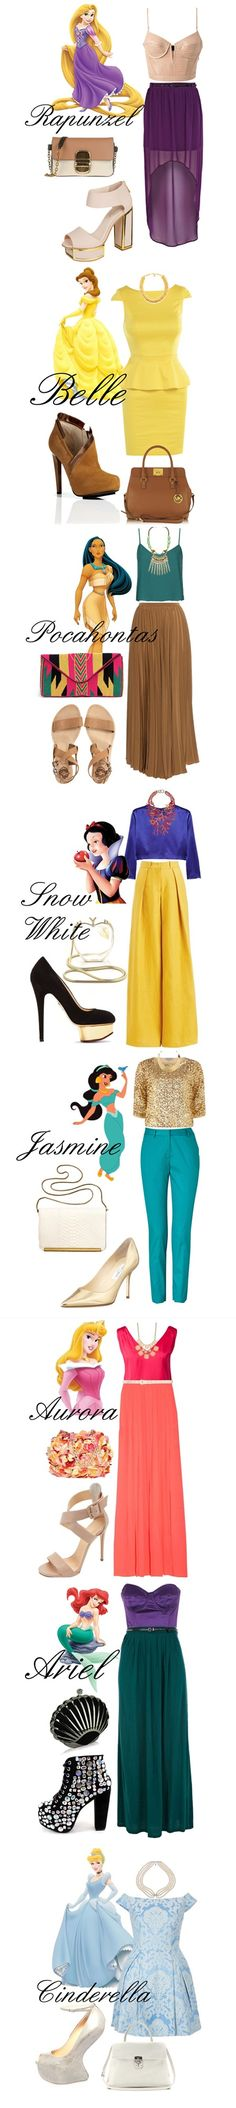 Disney Princess Inspired Outfits, Ariel and Pocahontas😍 Disney Character Outfits, Disney Princess Outfits, Disney Themed Outfits, Character Inspired Outfits, Disney Bound Outfits, Disney Dresses, Disney Clothes, Disney Princesses, Princess Inspired Outfits